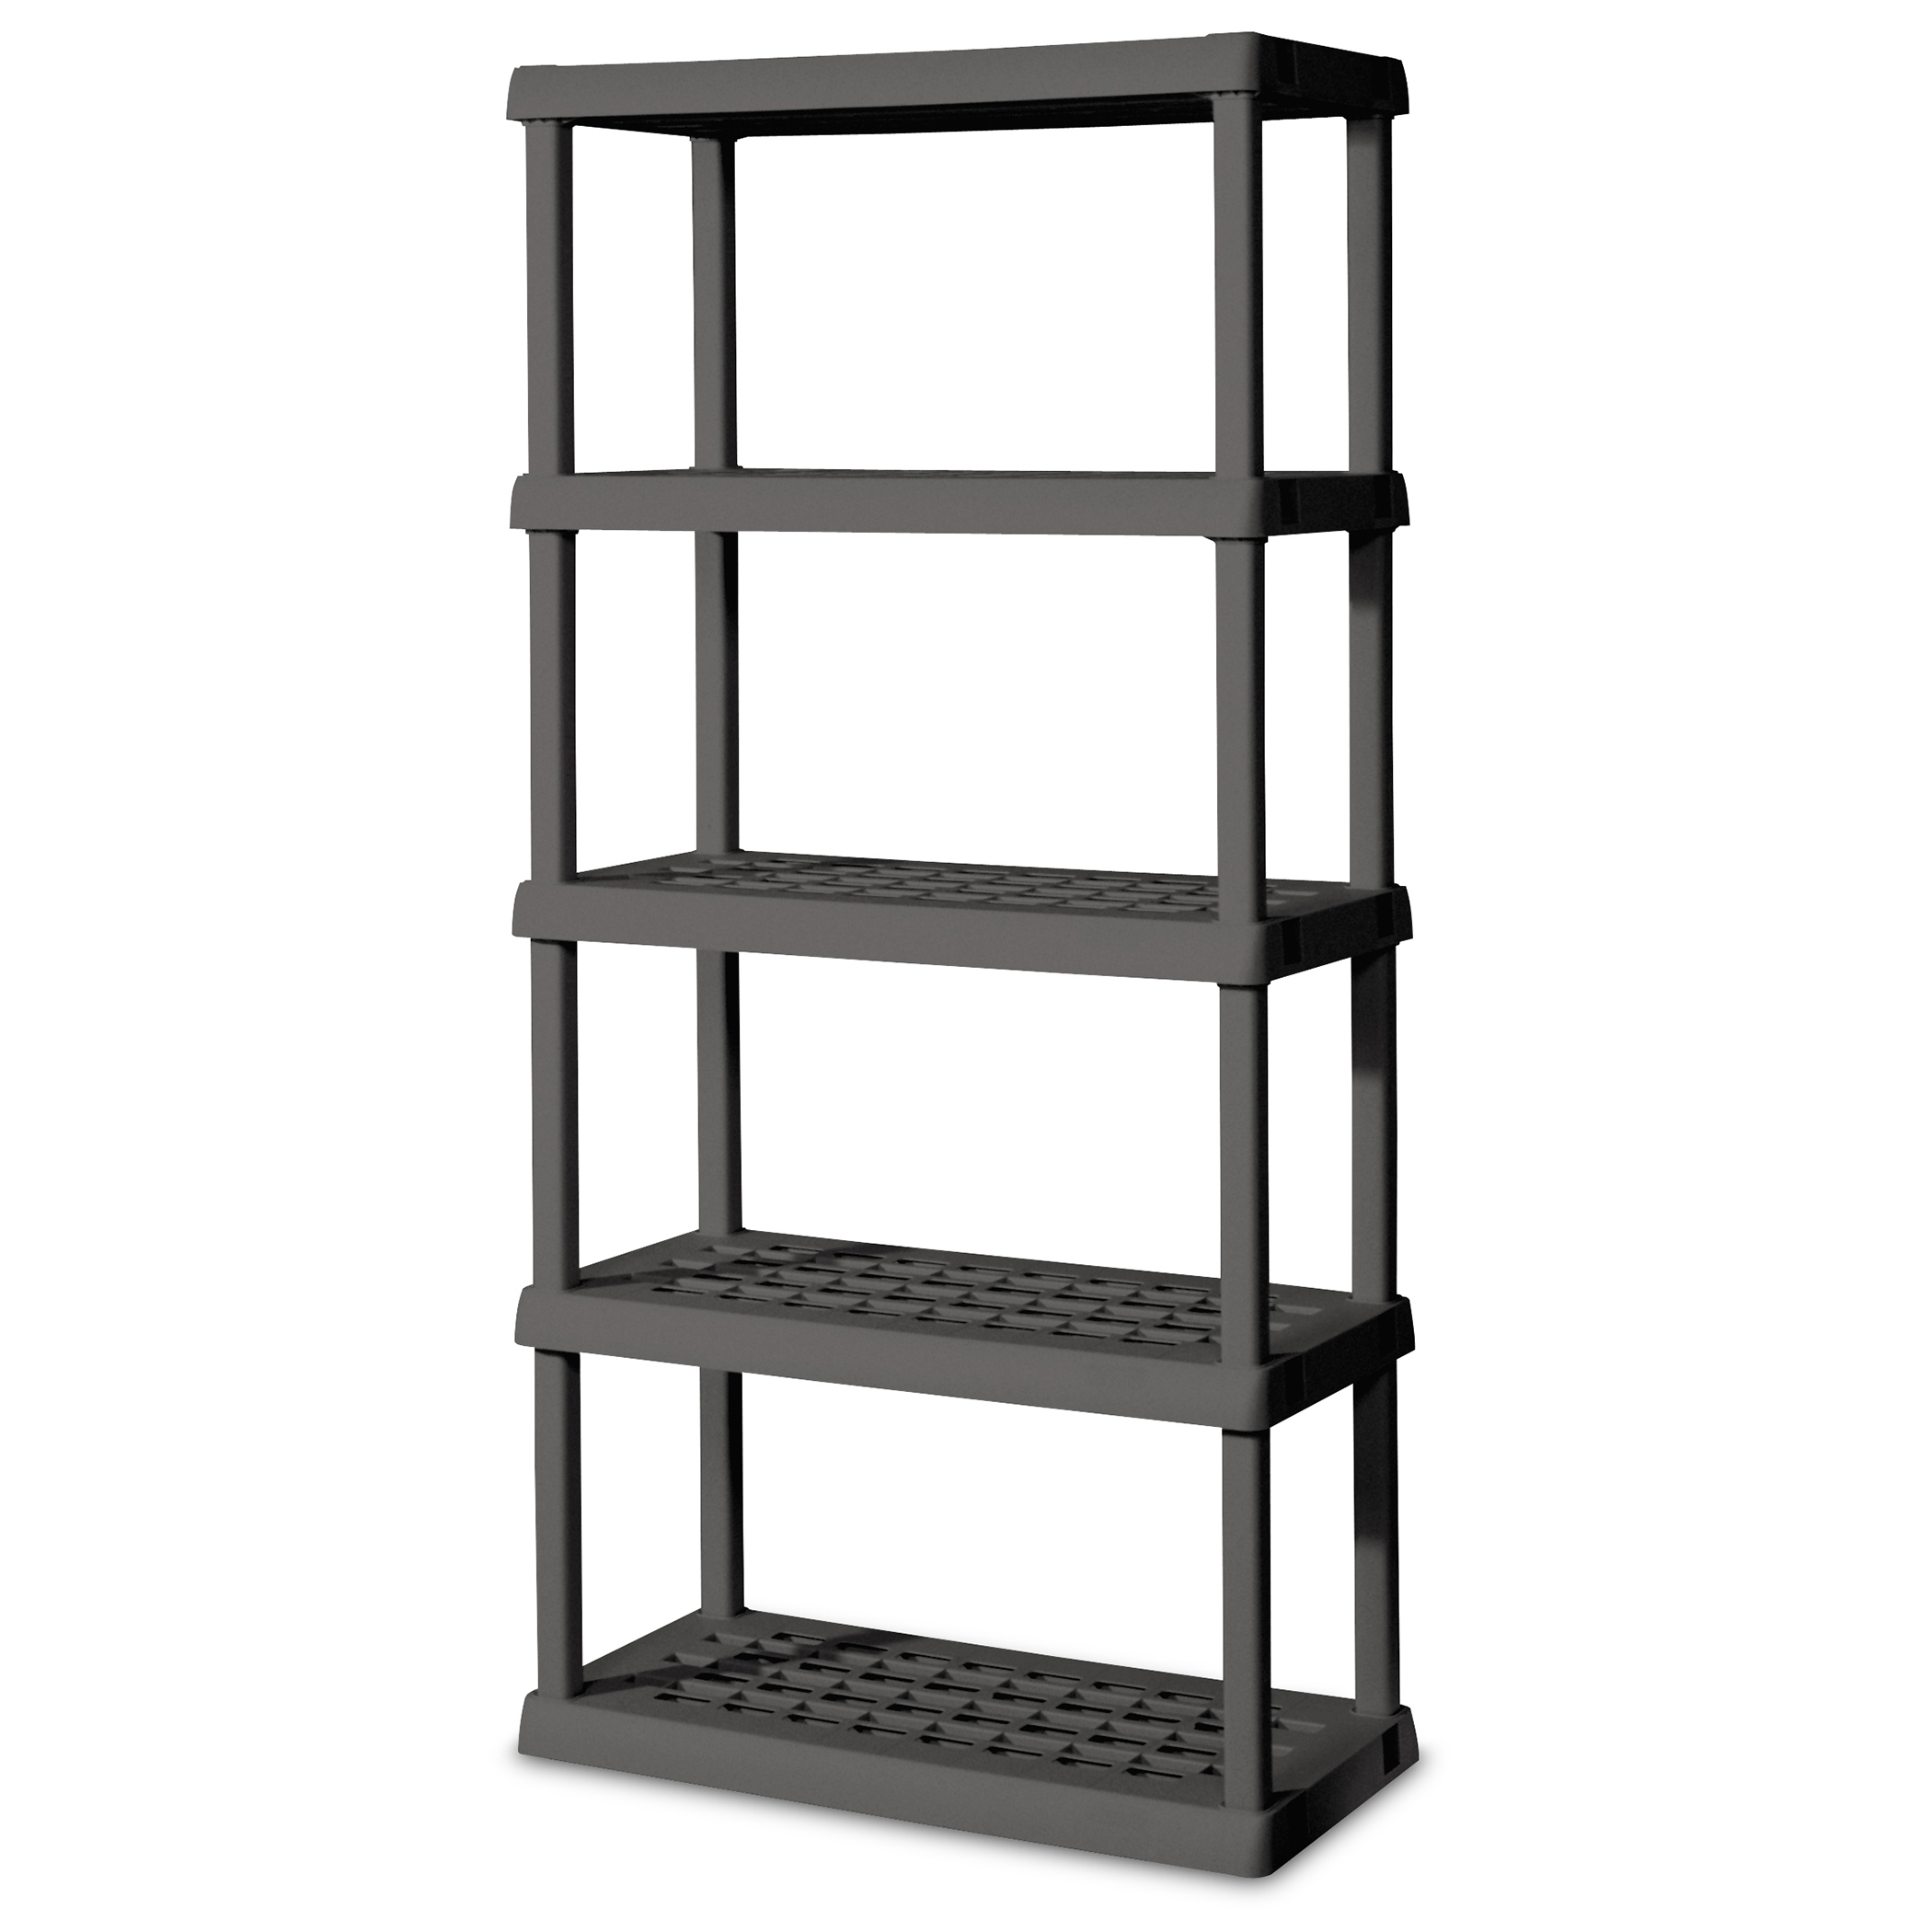 Sterilite 01553V01 Flat Gray 5 Shelf Shelving Unit